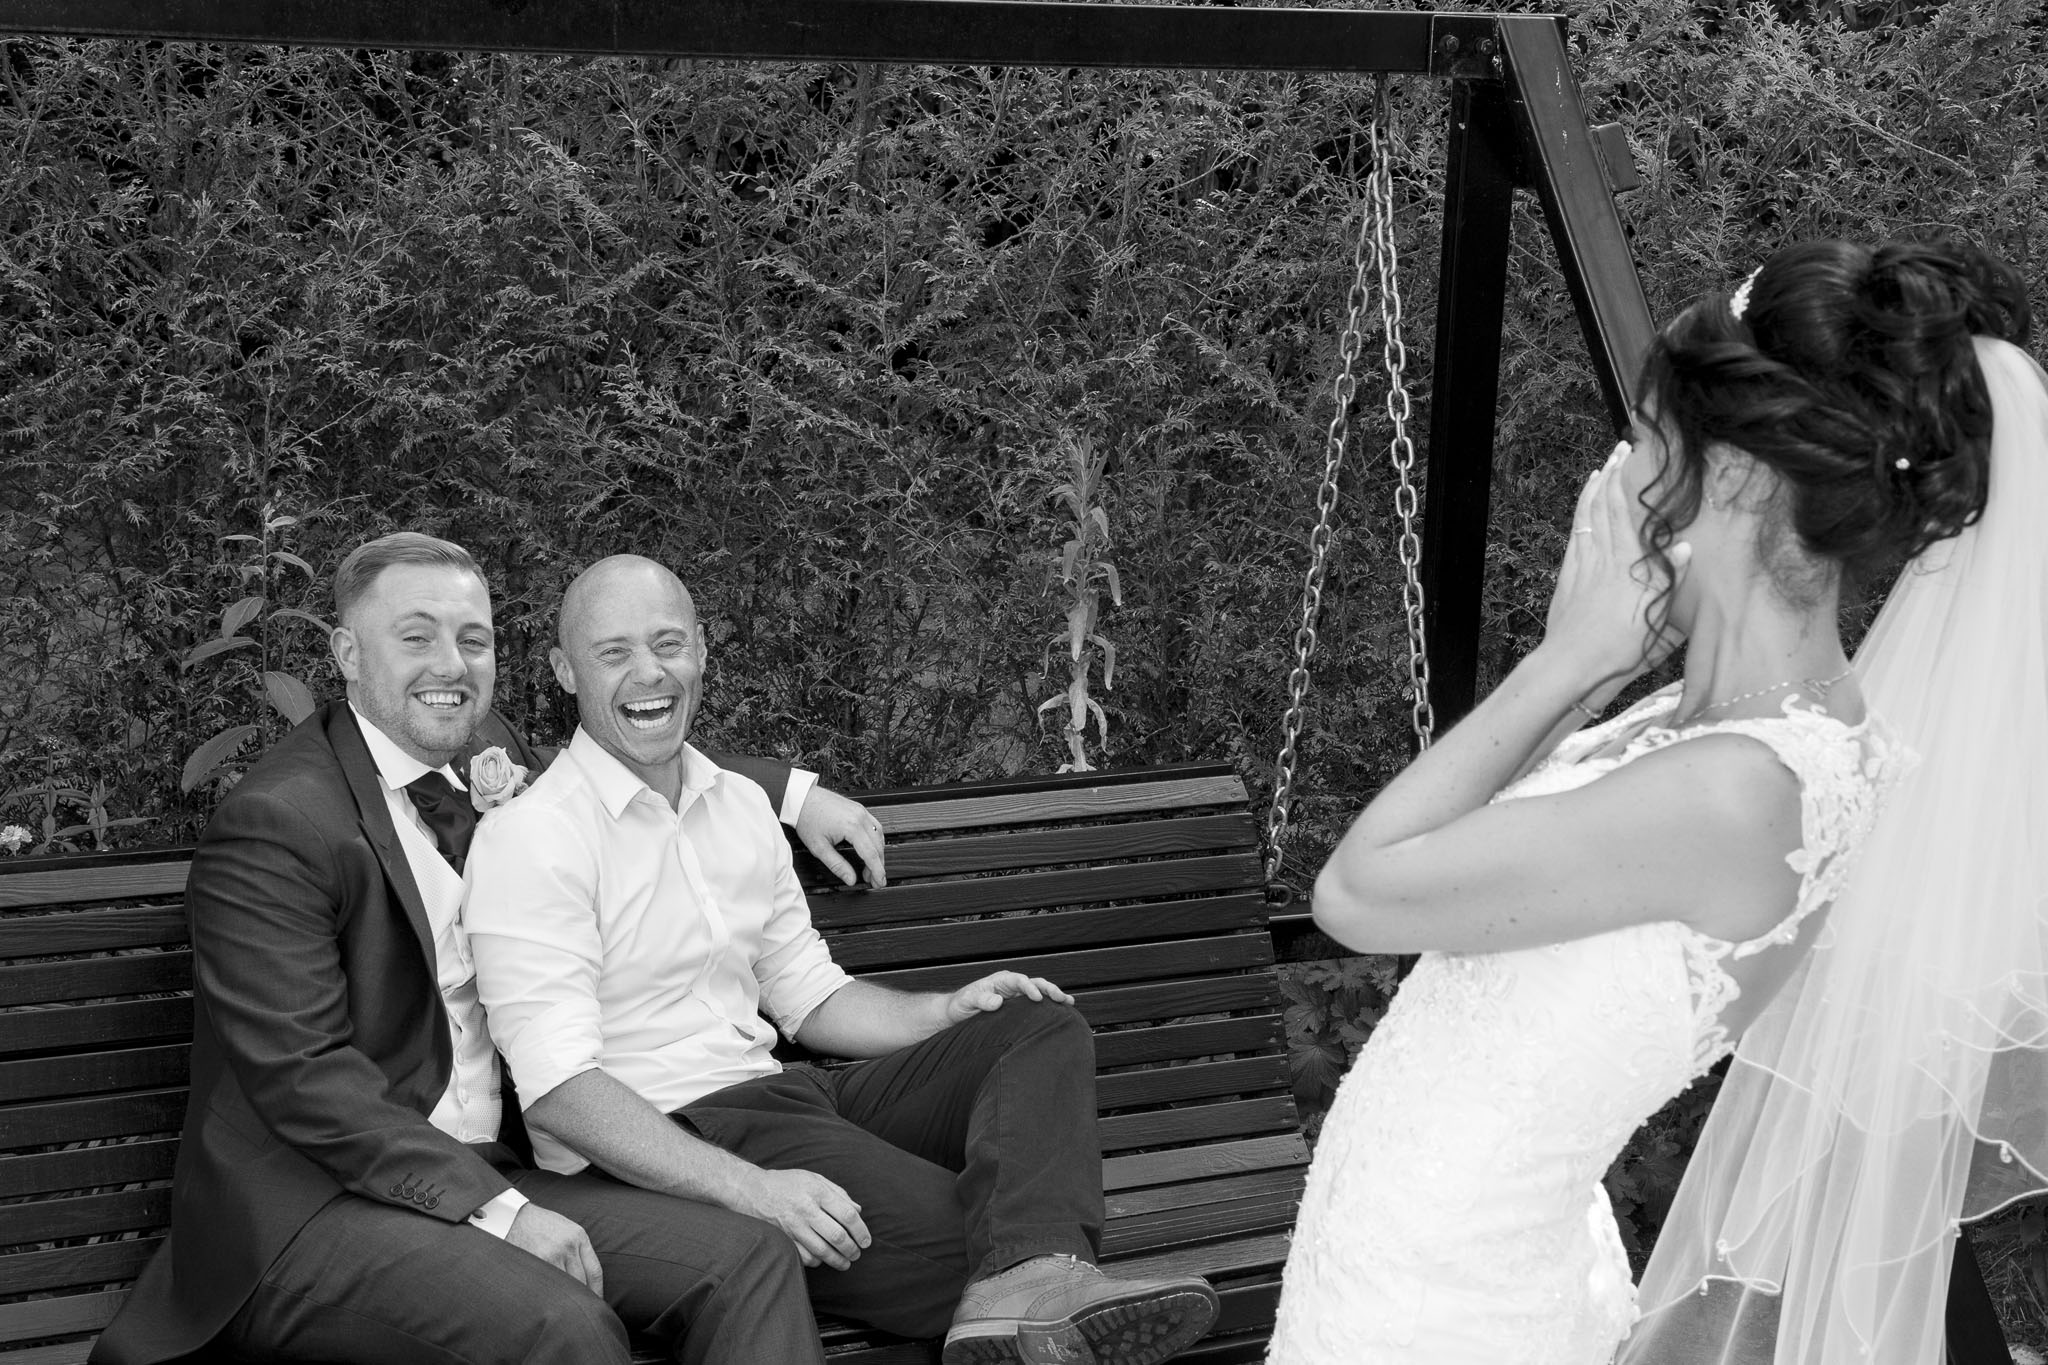 Me and my Brides & Grooms always have a laugh on the big day. Here's me showing Gabby & Ryan a pose.